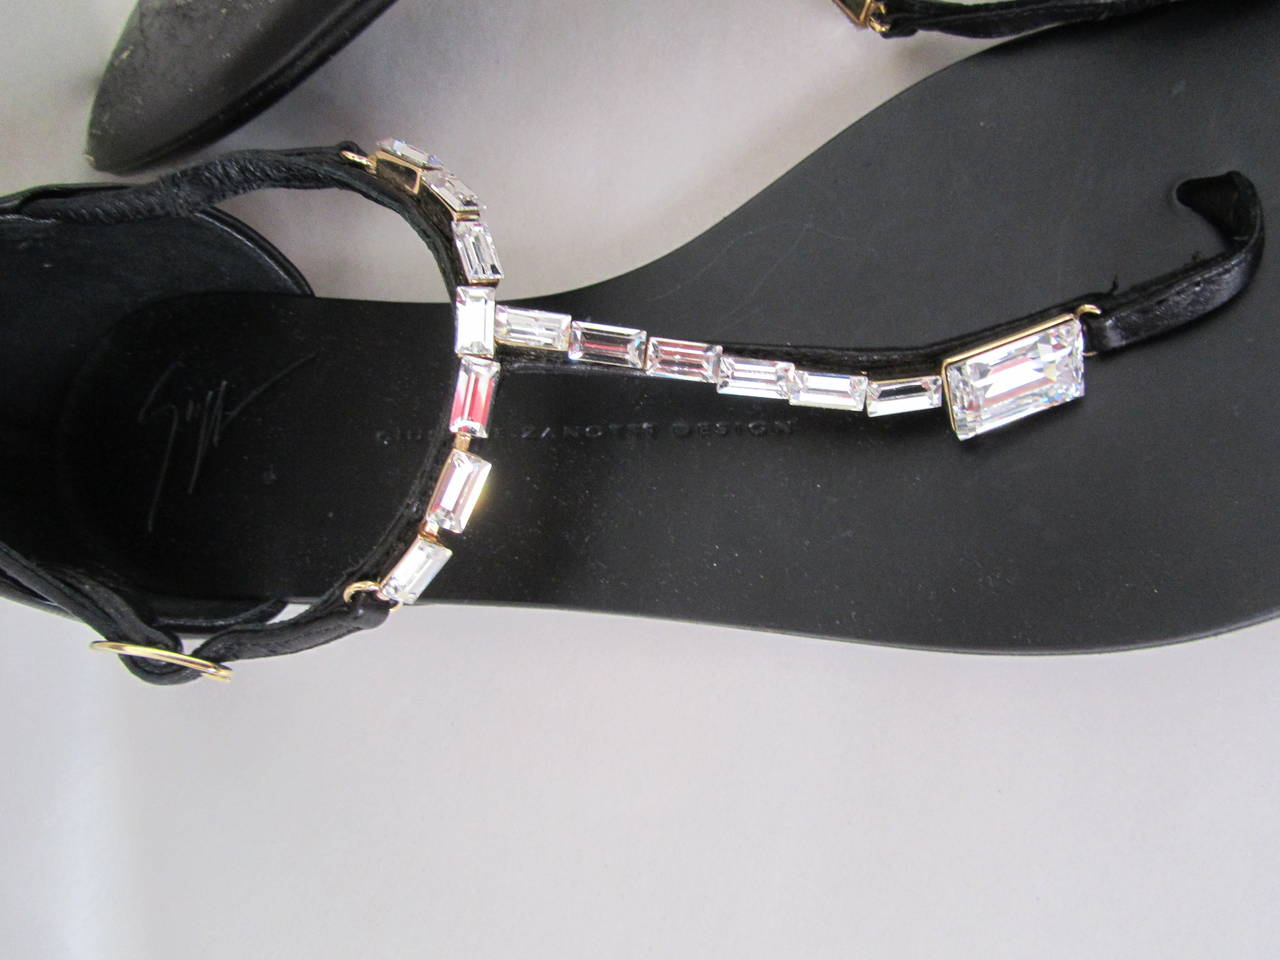 Giuseppe Zanotti Strap Sandals - Size 37 - Black with Rhinestones 6